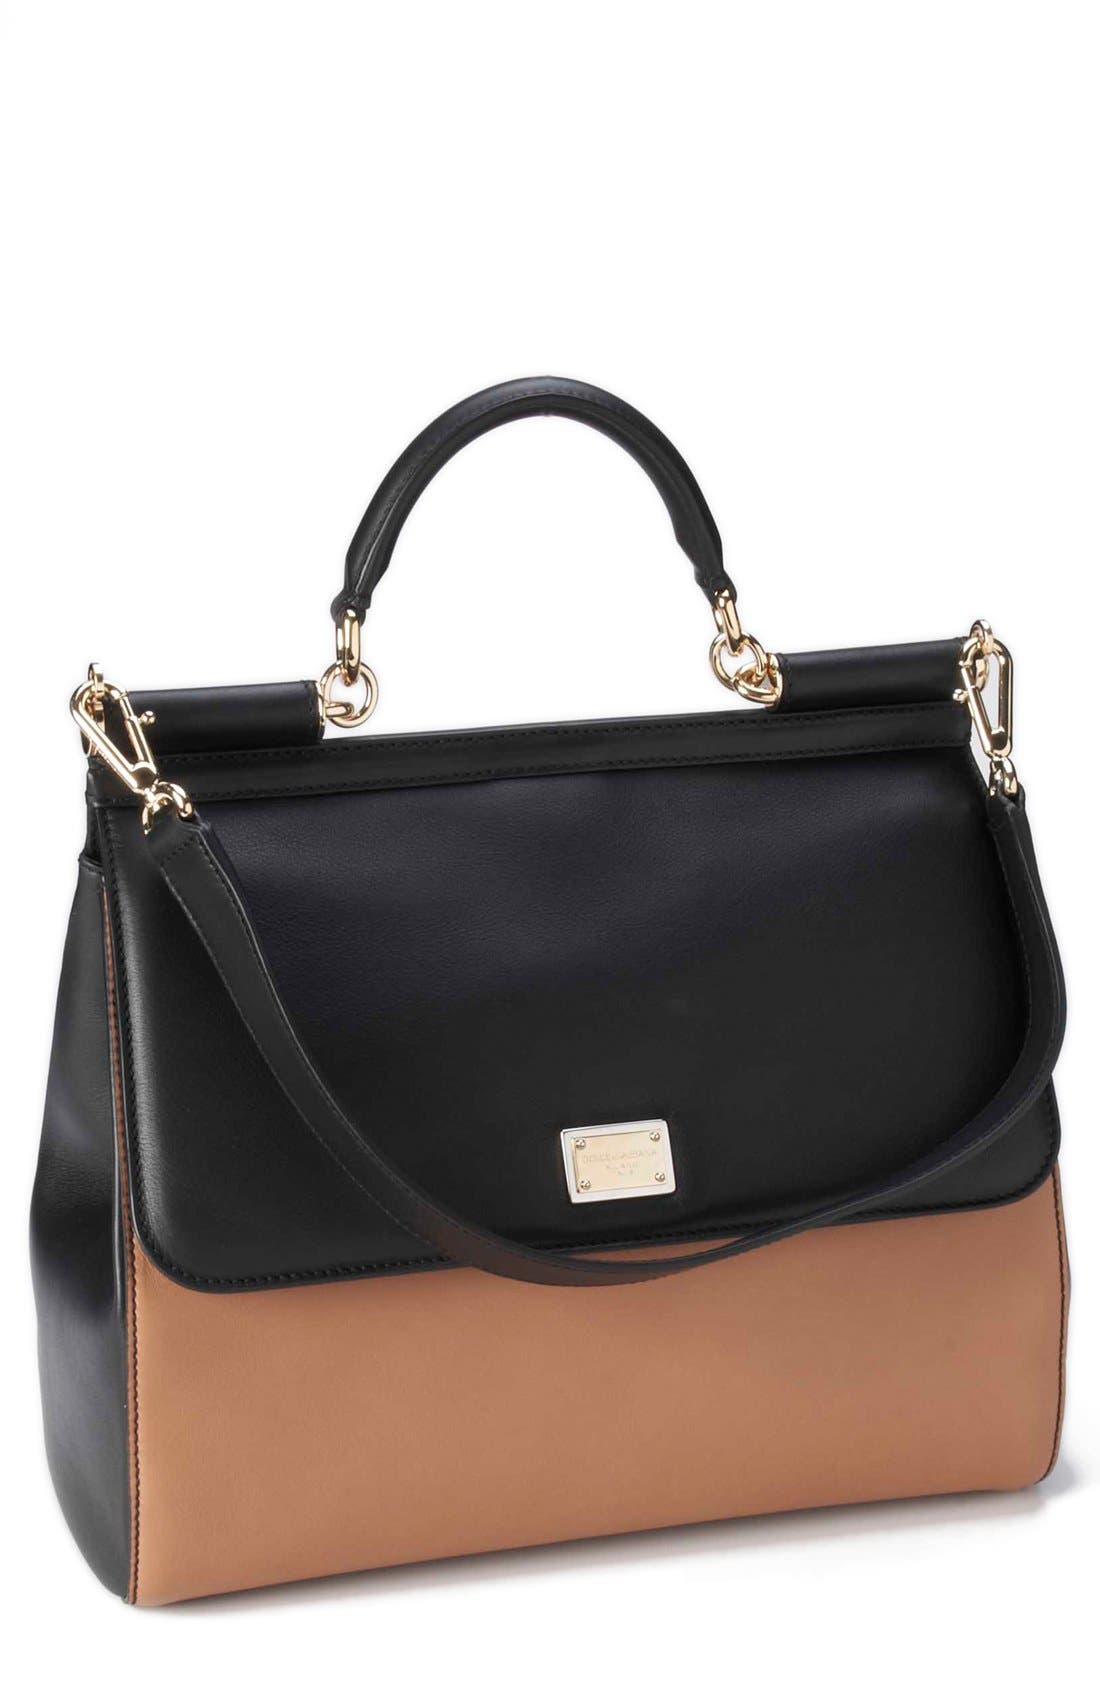 Alternate Image 1 Selected - Dolce&Gabbana 'Miss Sicily - Bi-Color' Top Handle Leather Satchel